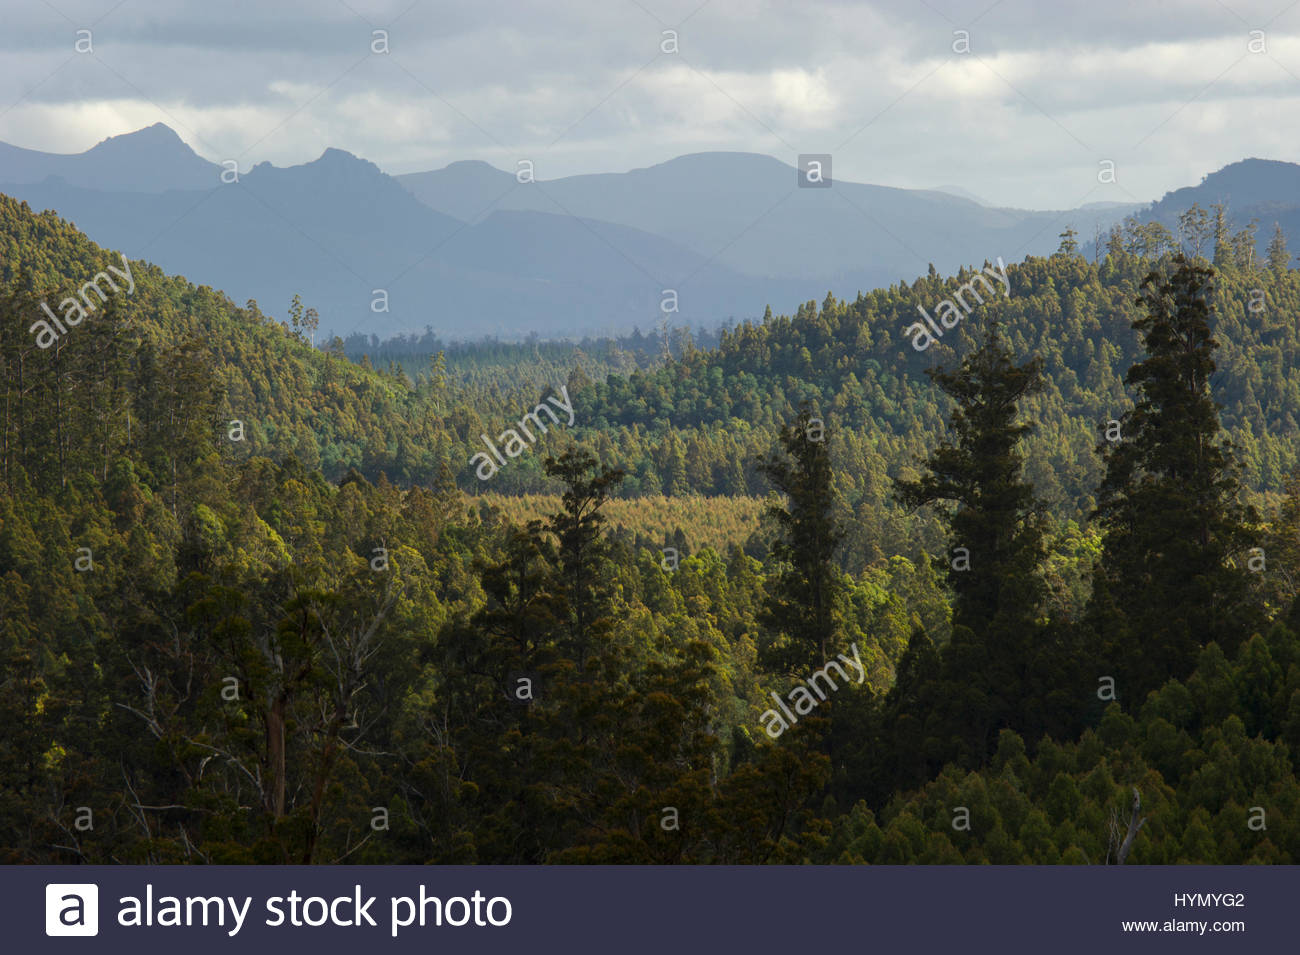 A view from the top of a 84 meter Mountain Ash tree, Eucalyptus regnans, looking at the Upper Florentine River Valley - Stock Image